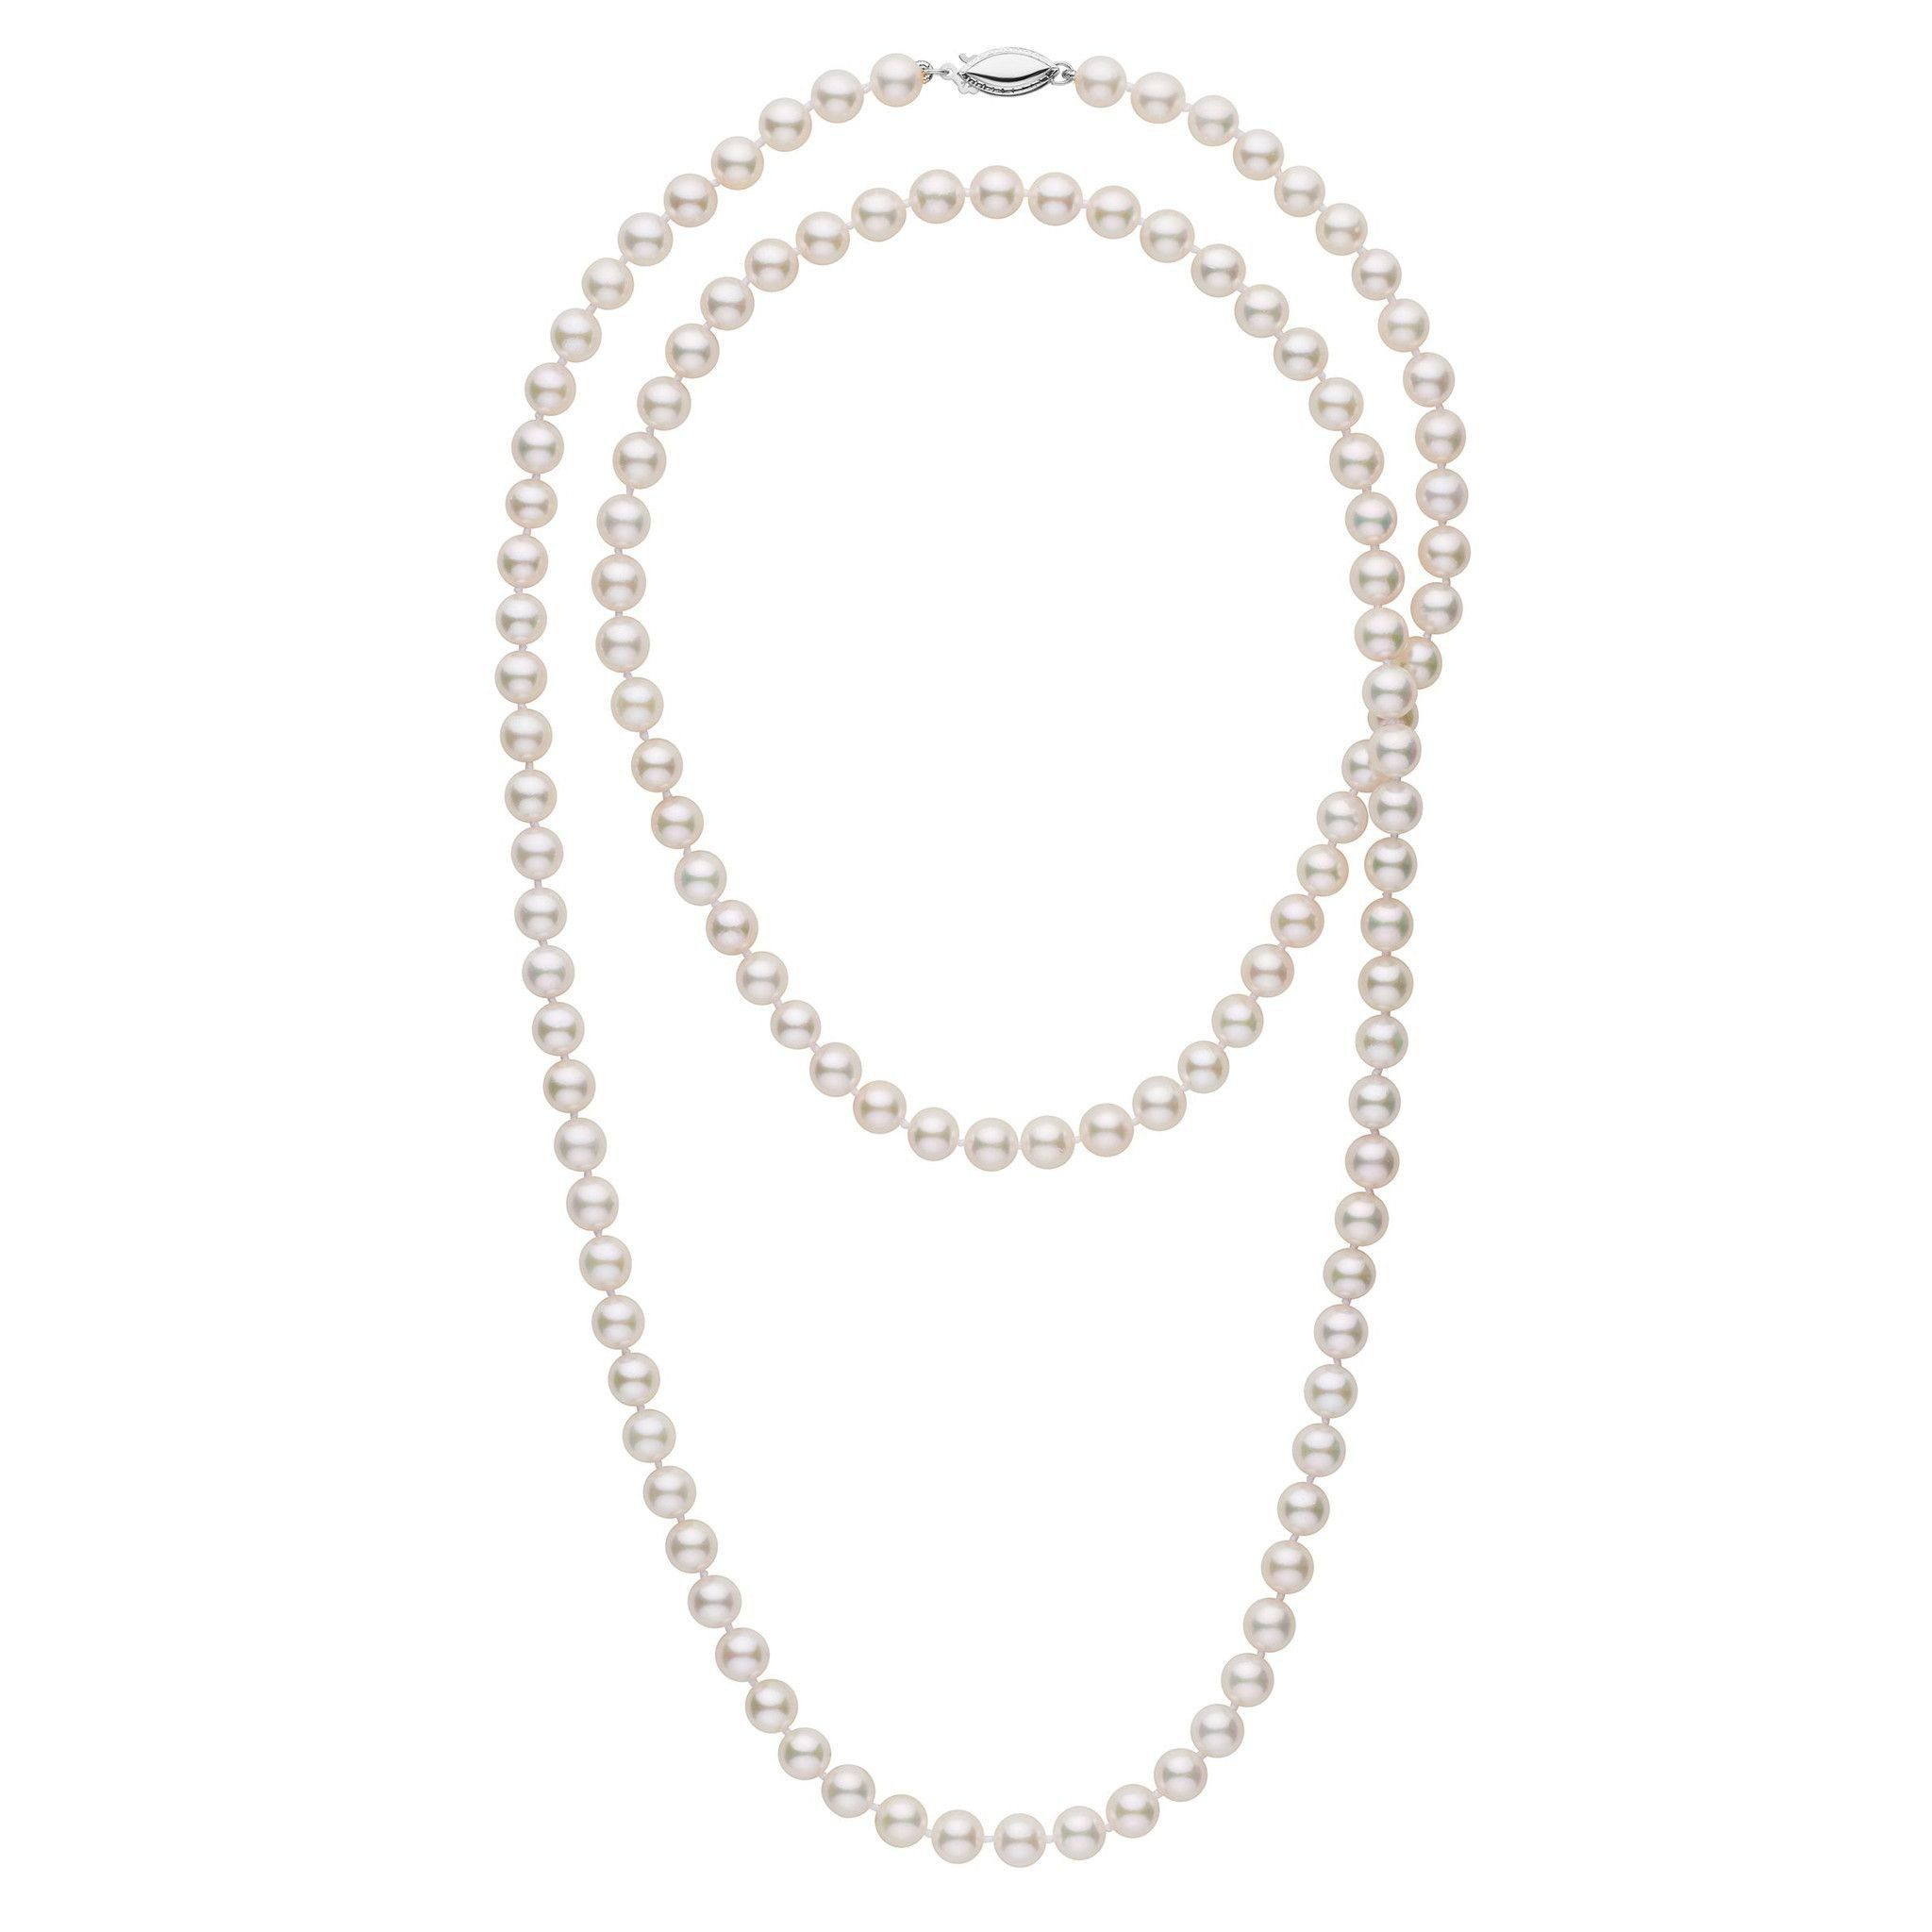 6.5-7.0 mm 35 Inch AA+ White Akoya Pearl Necklace